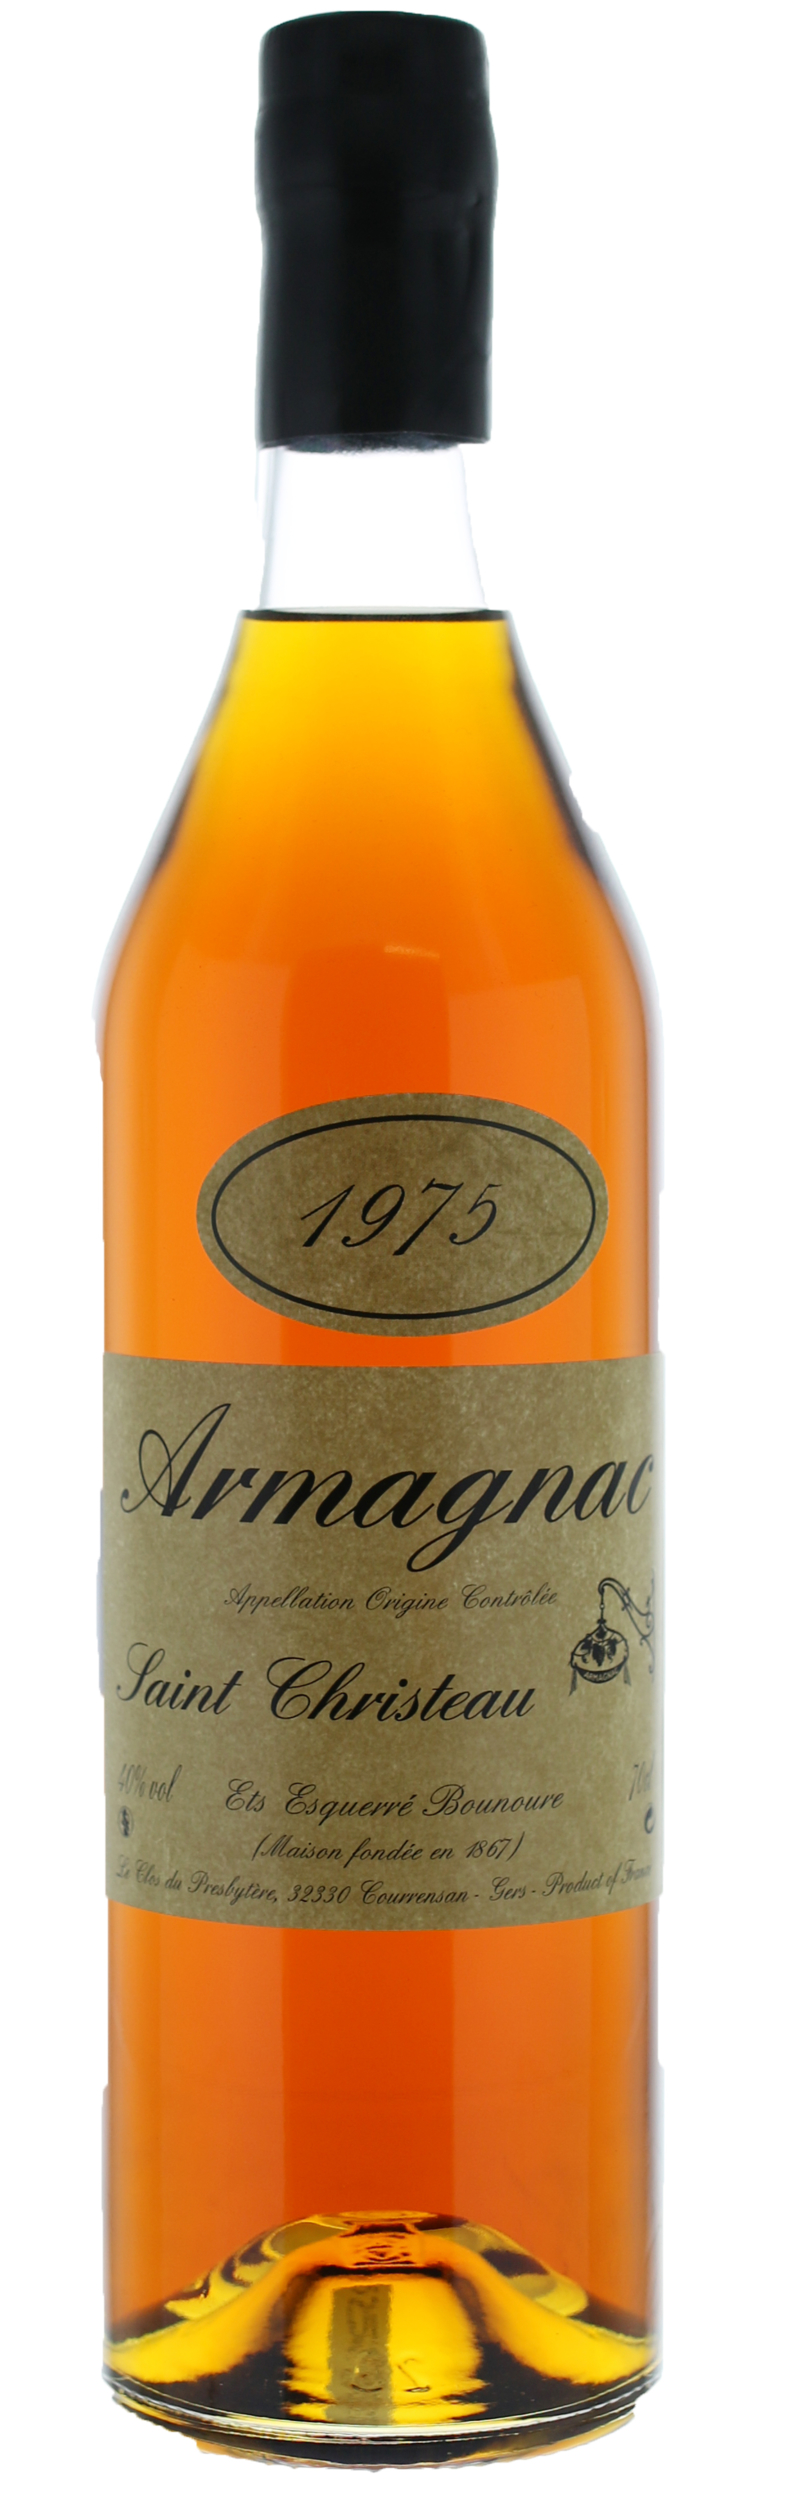 ARMAGNAC - 1975 - Saint-Christeau - 41° - G. Miclo